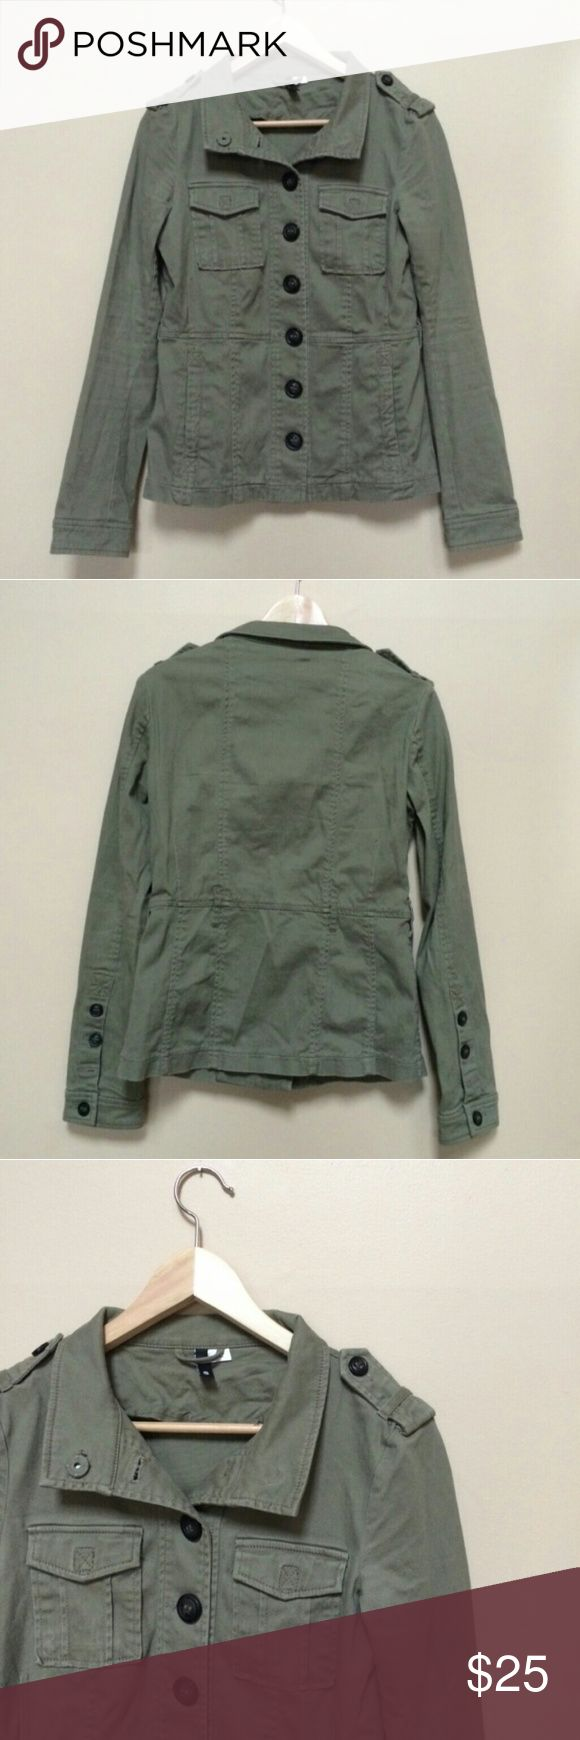 Hunter Green Military Jacket Army green military jacket from H&M Buttons down front and on sleeves Two breast pockets Collar that snaps at top Excellent condition, no flaws  Accepting most reasonable offers! H&M Jackets & Coats